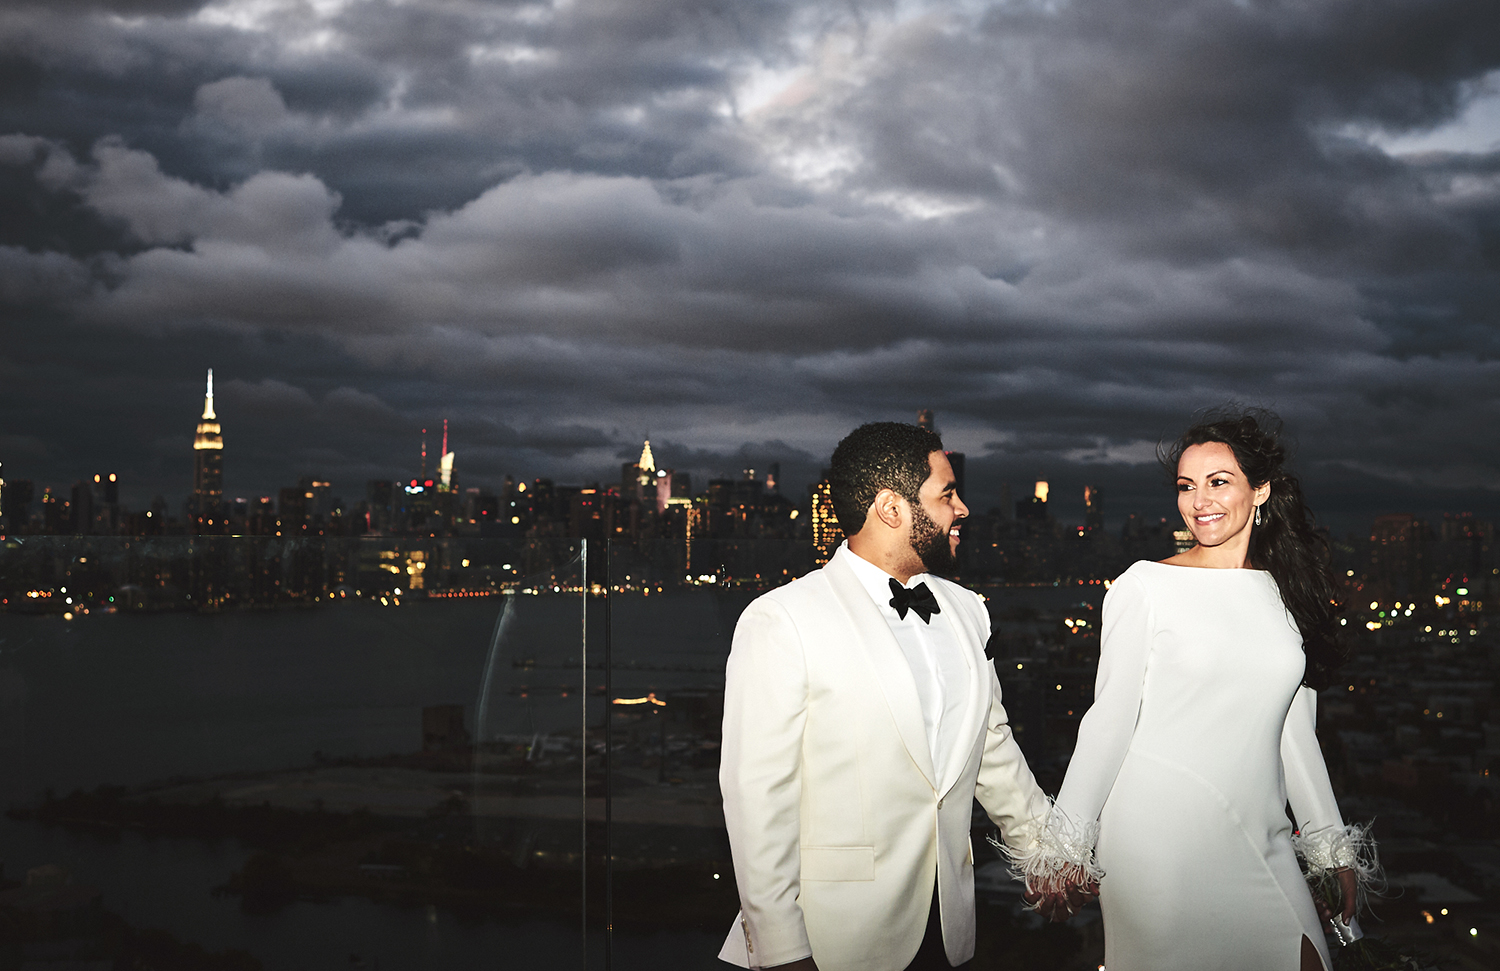 170930_WilliamValeWeddingPhotography_BrooklynWeddingPhotographer_By_BriJohnsonWeddings_0132.jpg